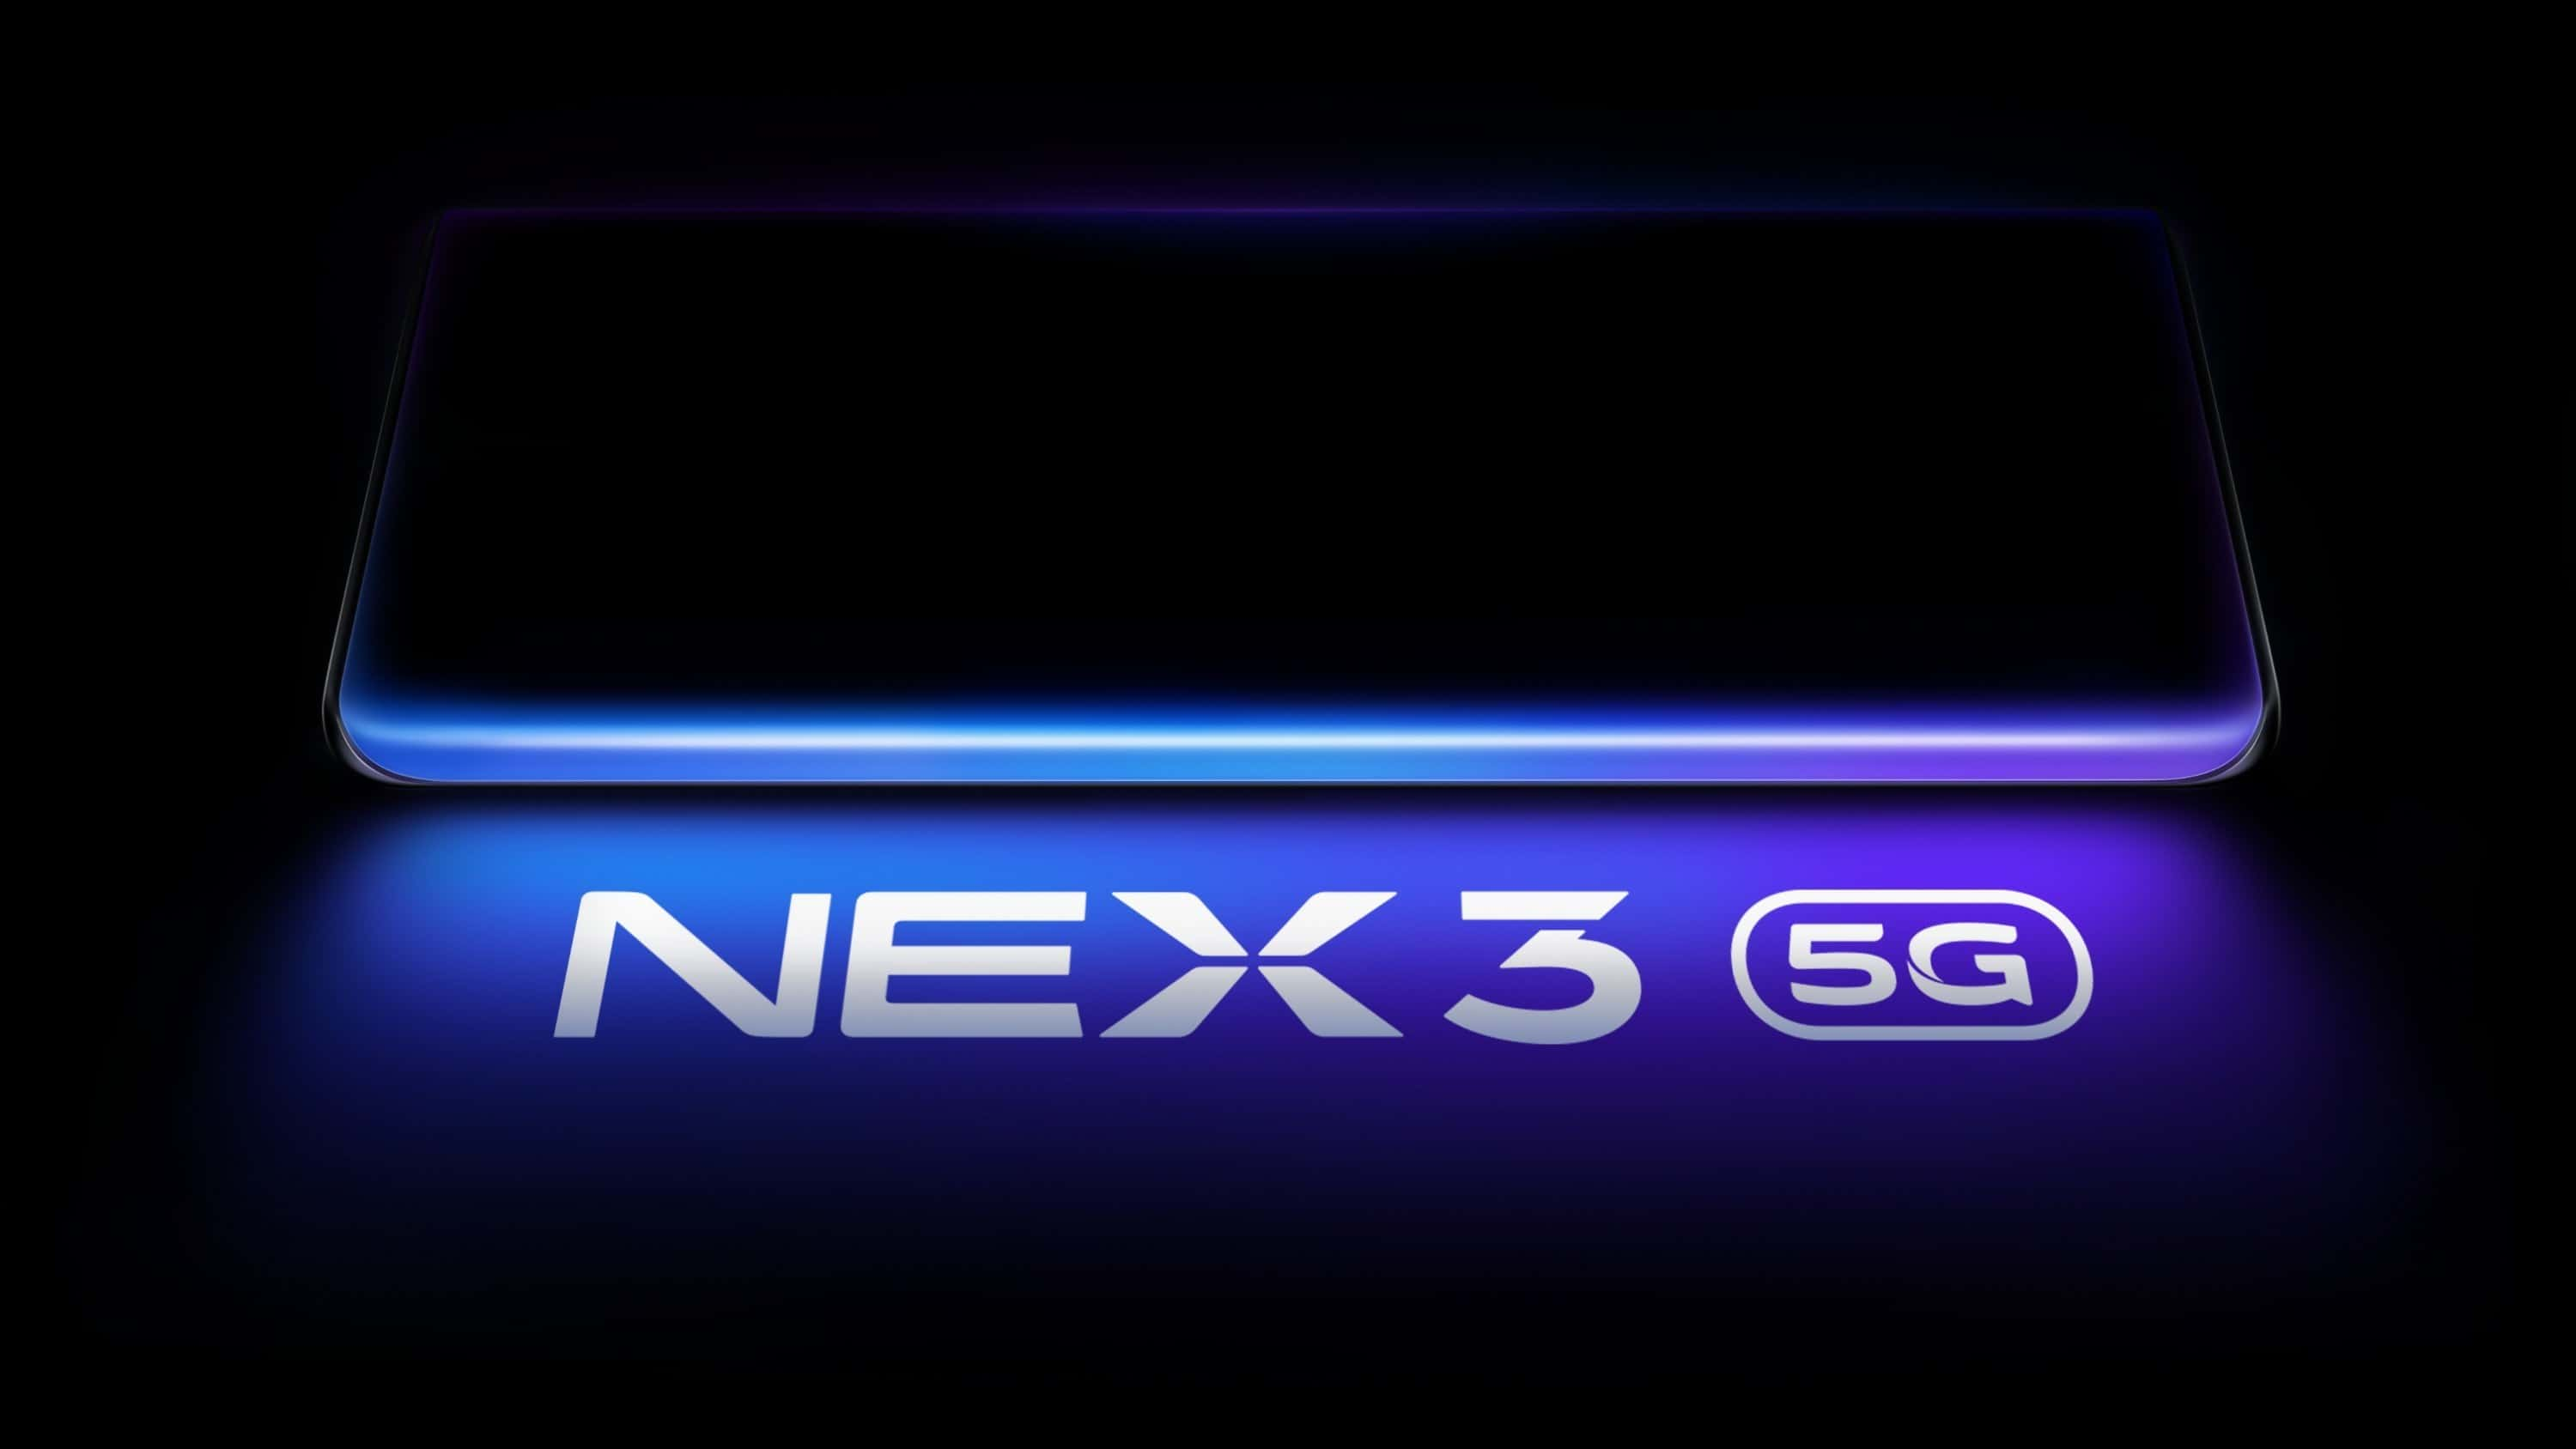 Vivo NEX 3 5G smartphone will be launched in September - Report